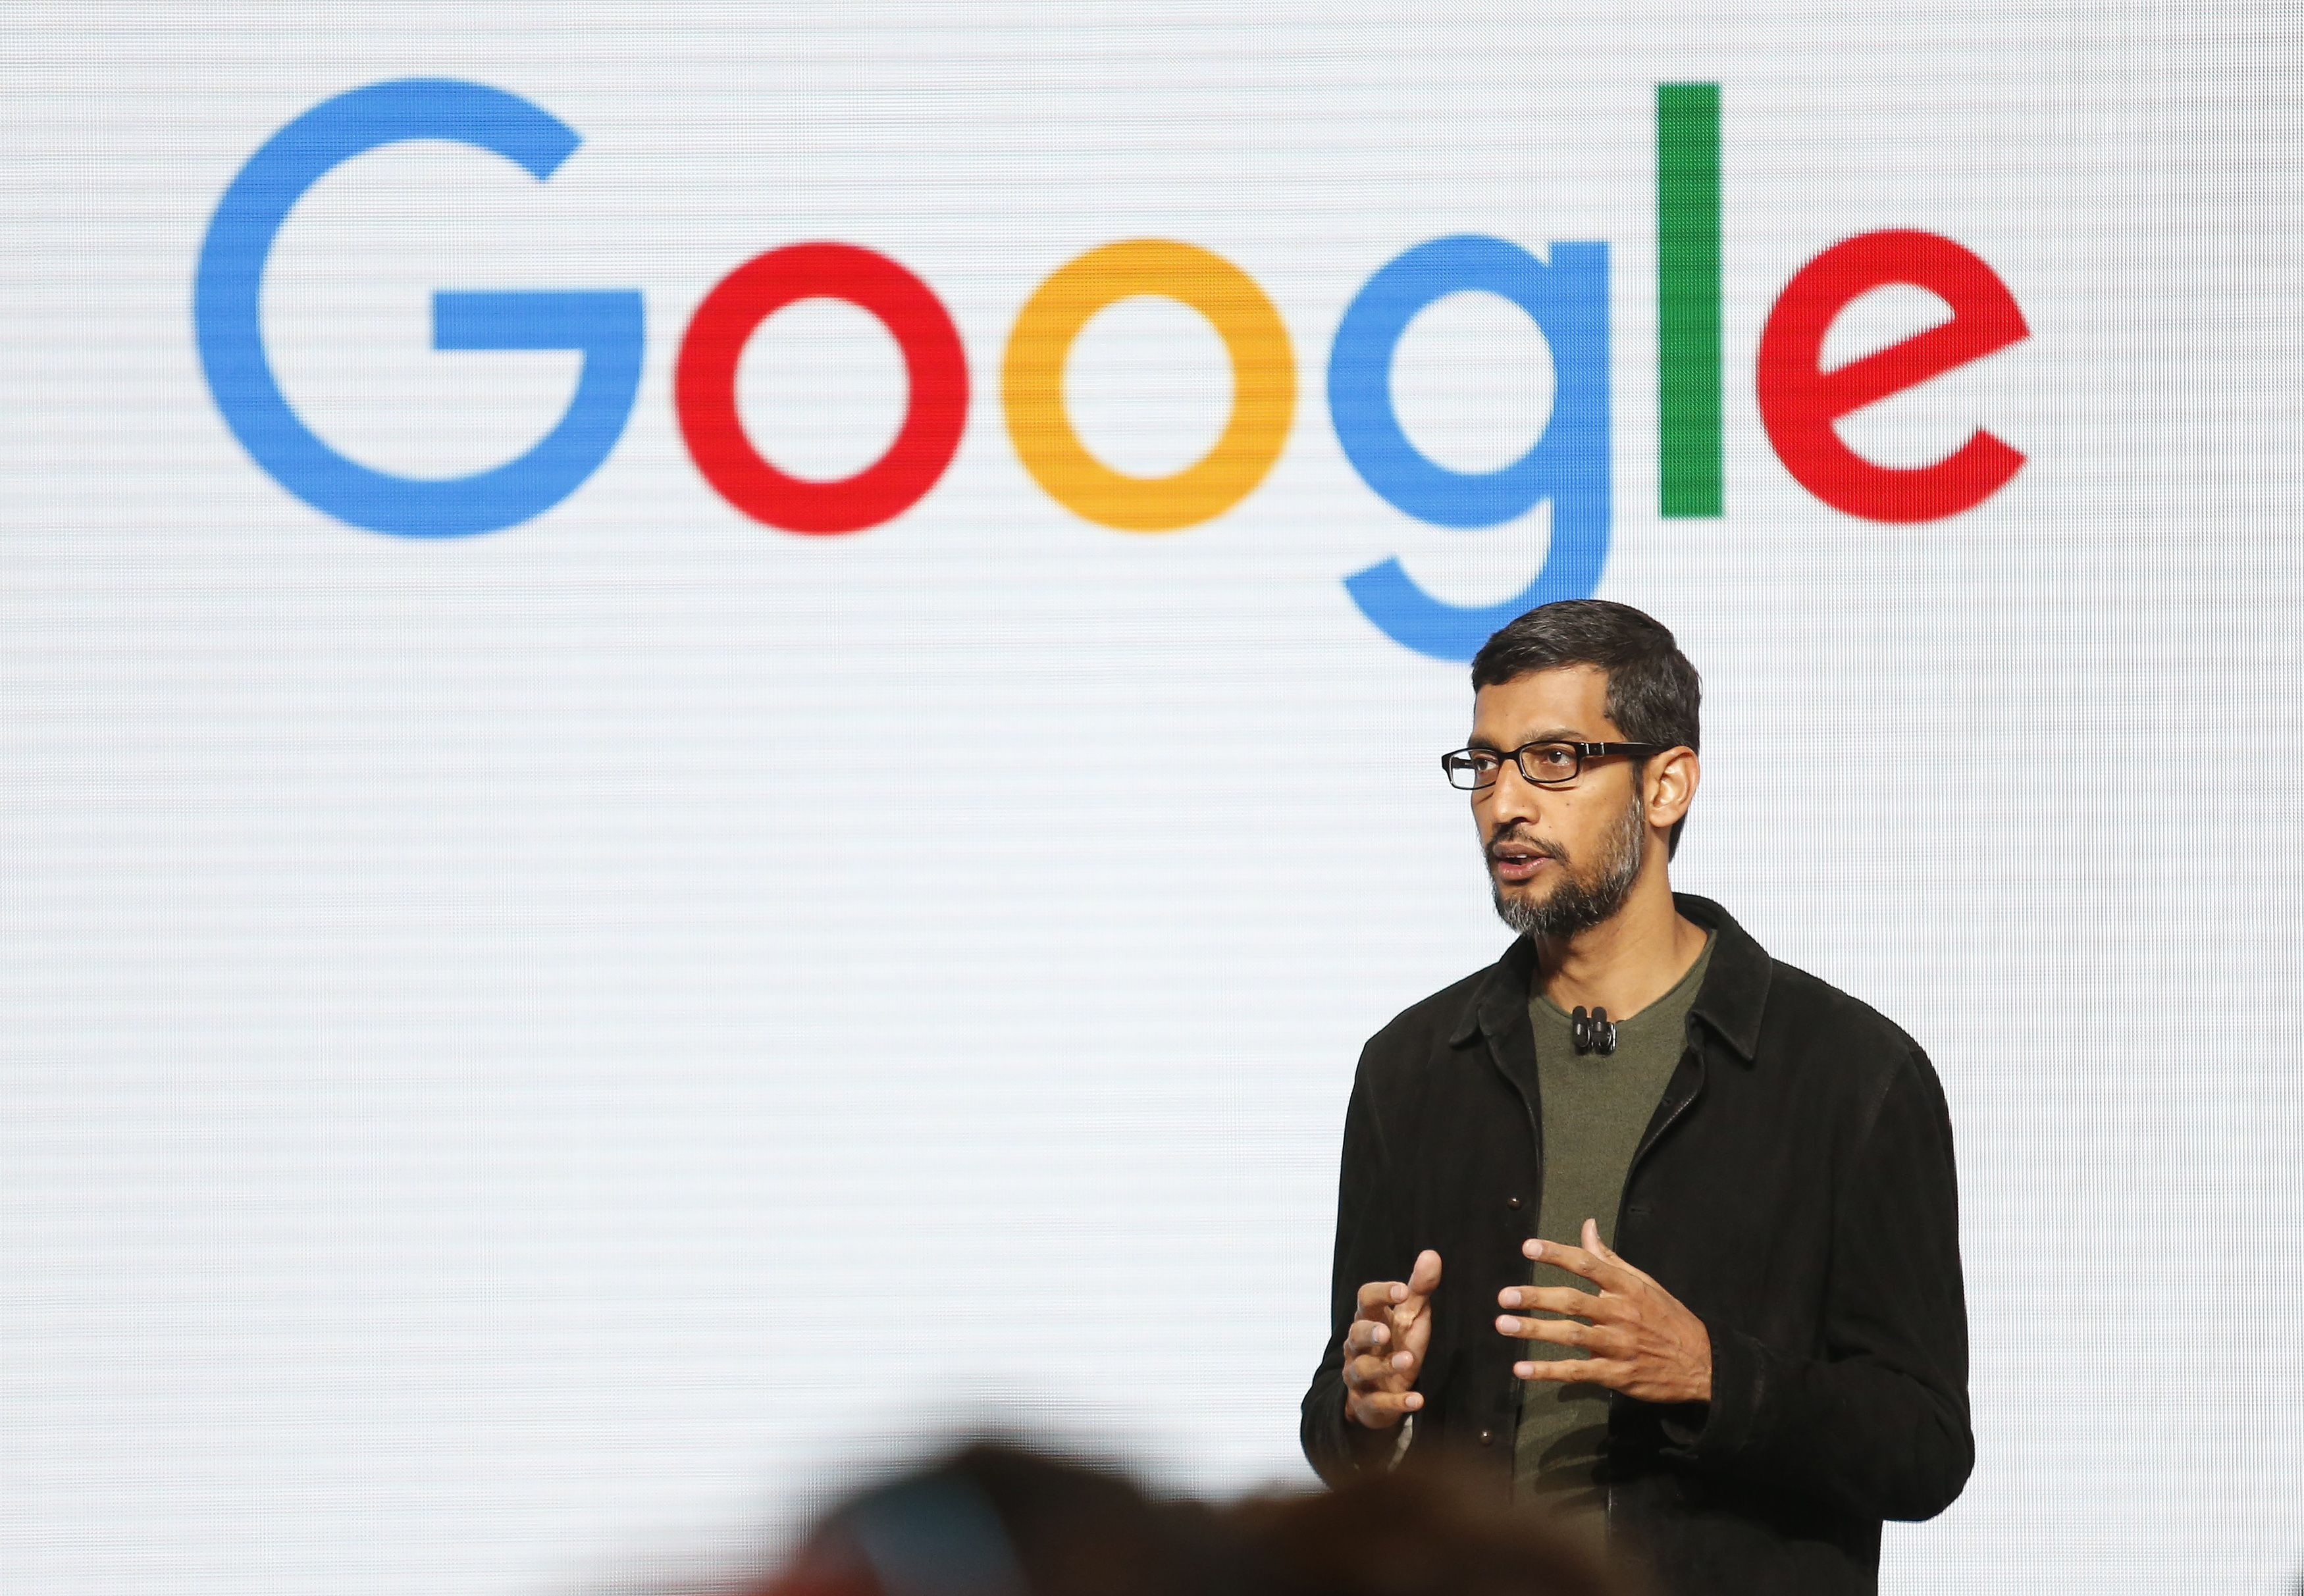 Alphabet closes down after reporting slowing Google ad revenue